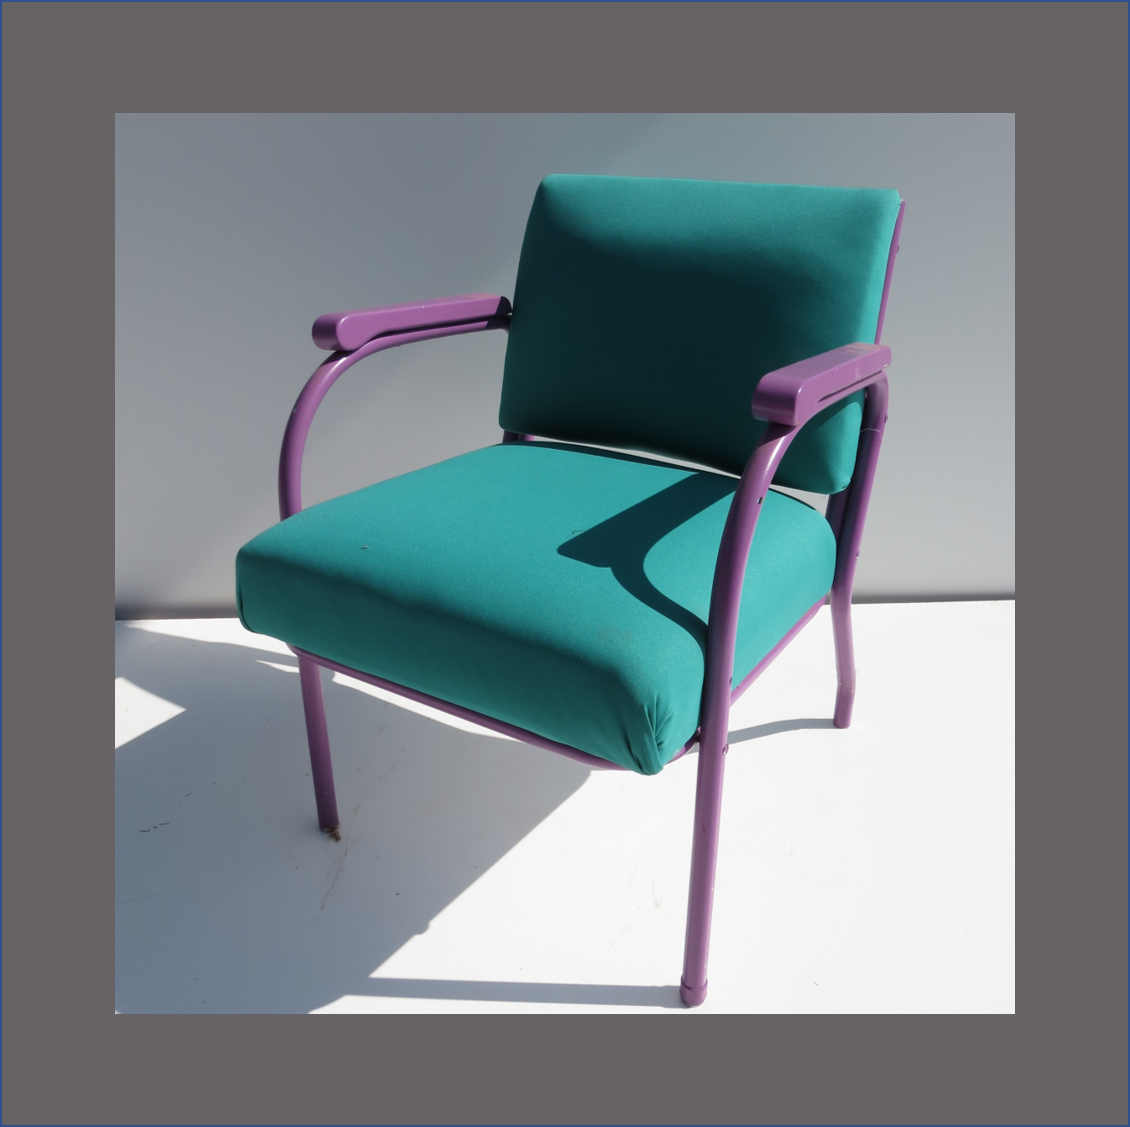 office-chair-with-arms